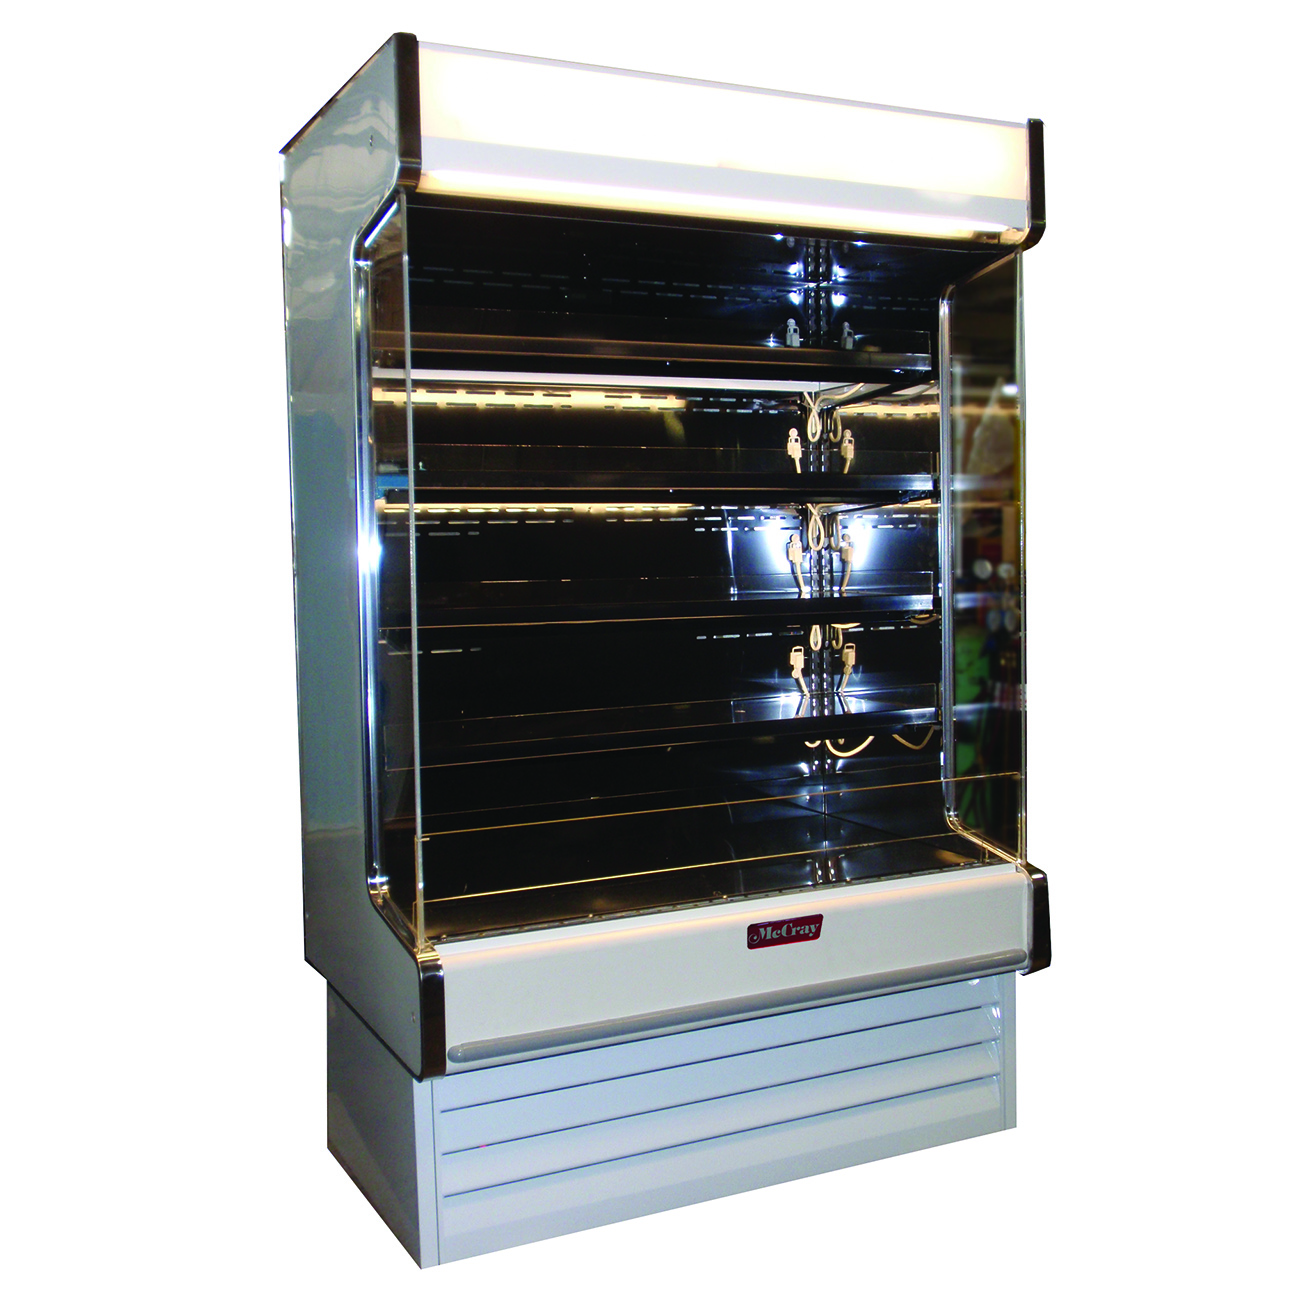 Howard-McCray SC-OD35E-4-B-LED-LC merchandiser, open refrigerated display